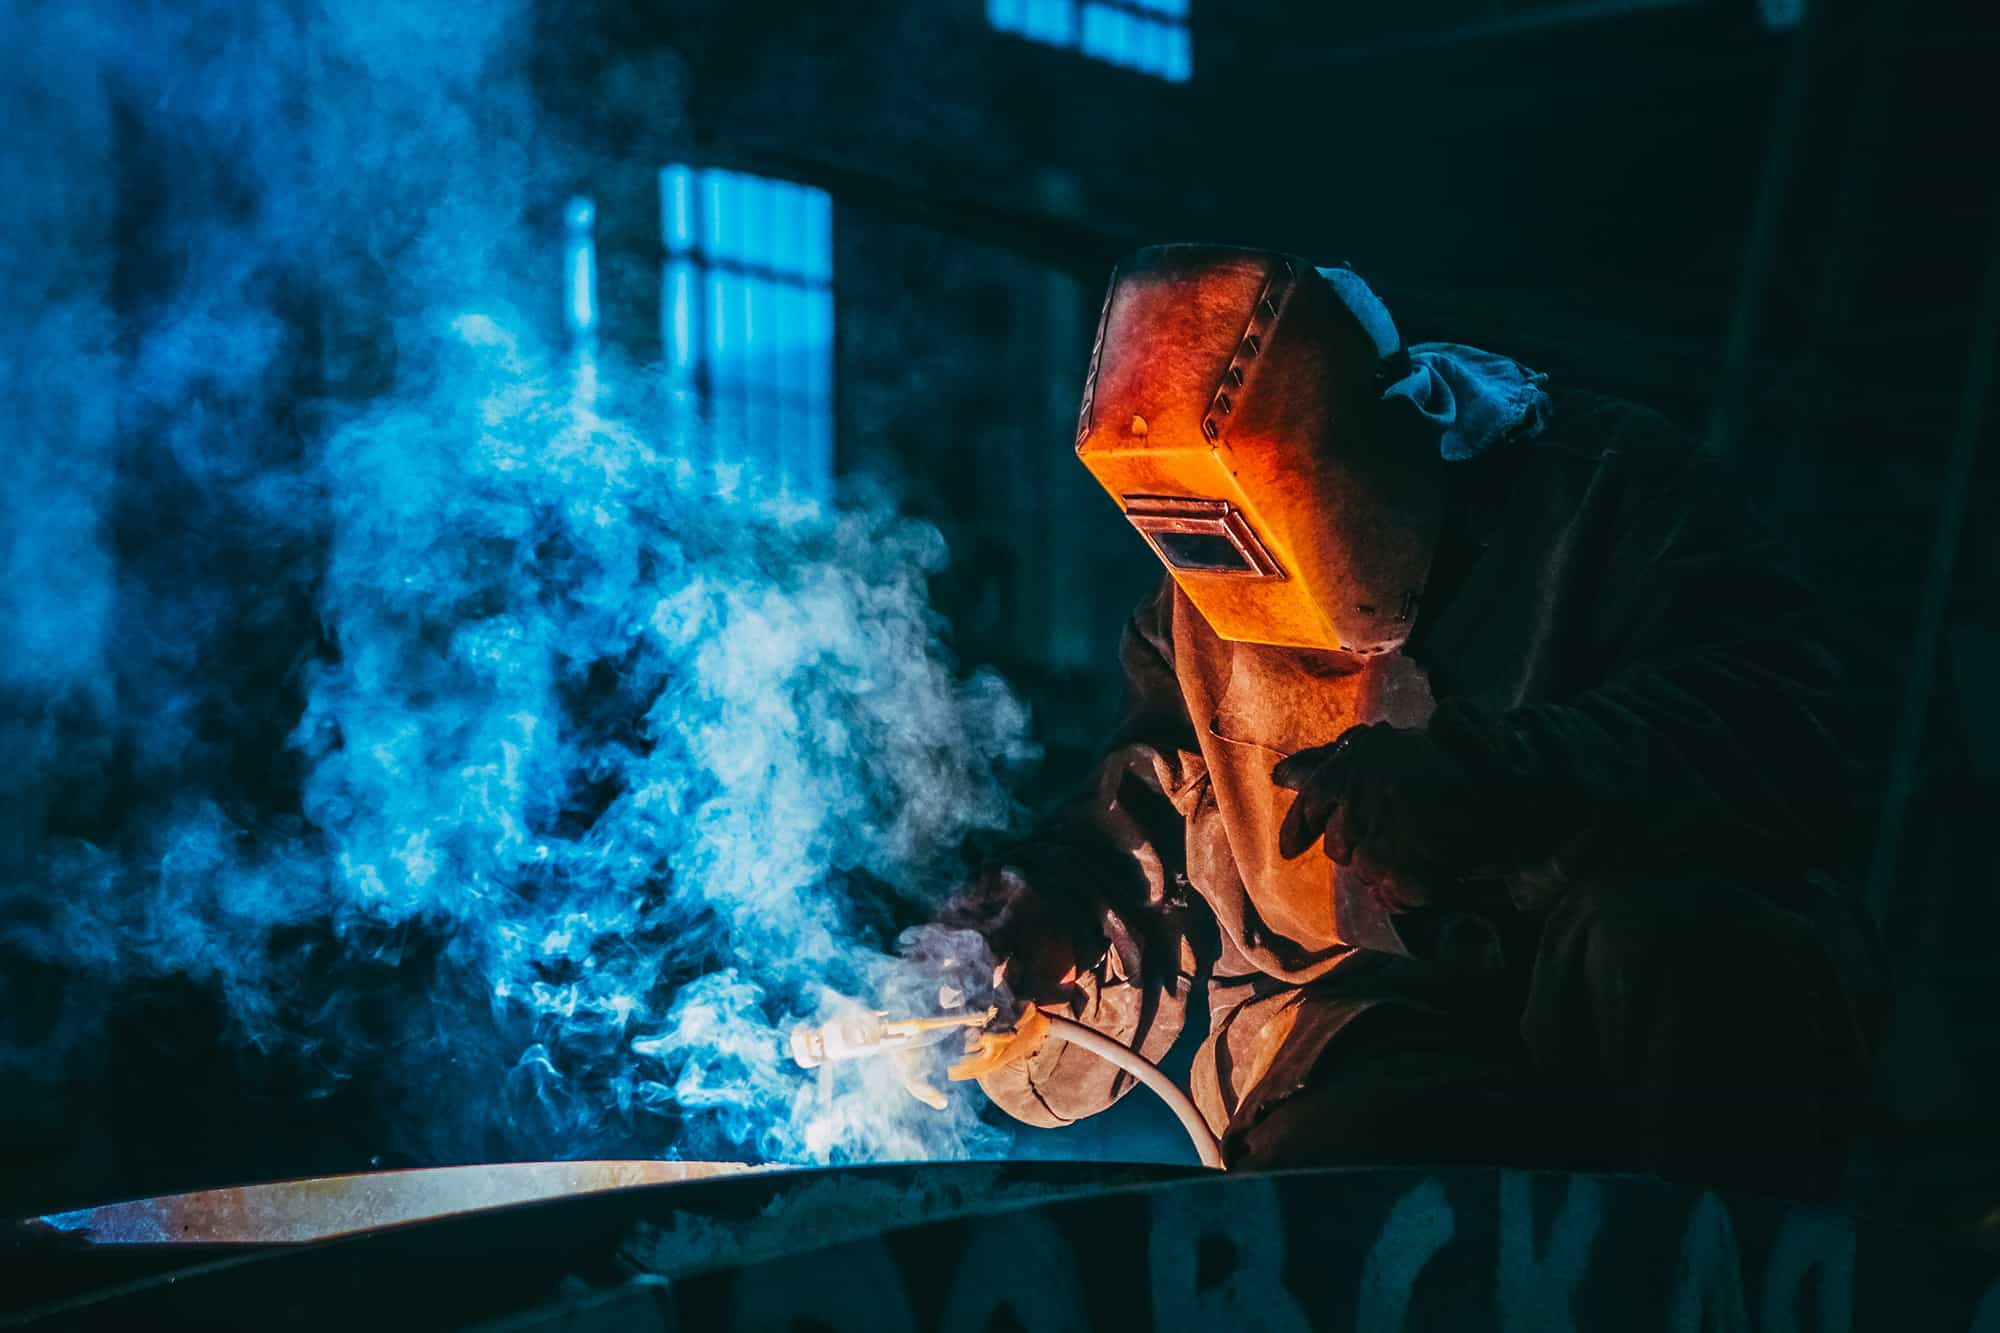 person-welding-wearing-a-prootective-metal-mask-3158651 (1).jpg